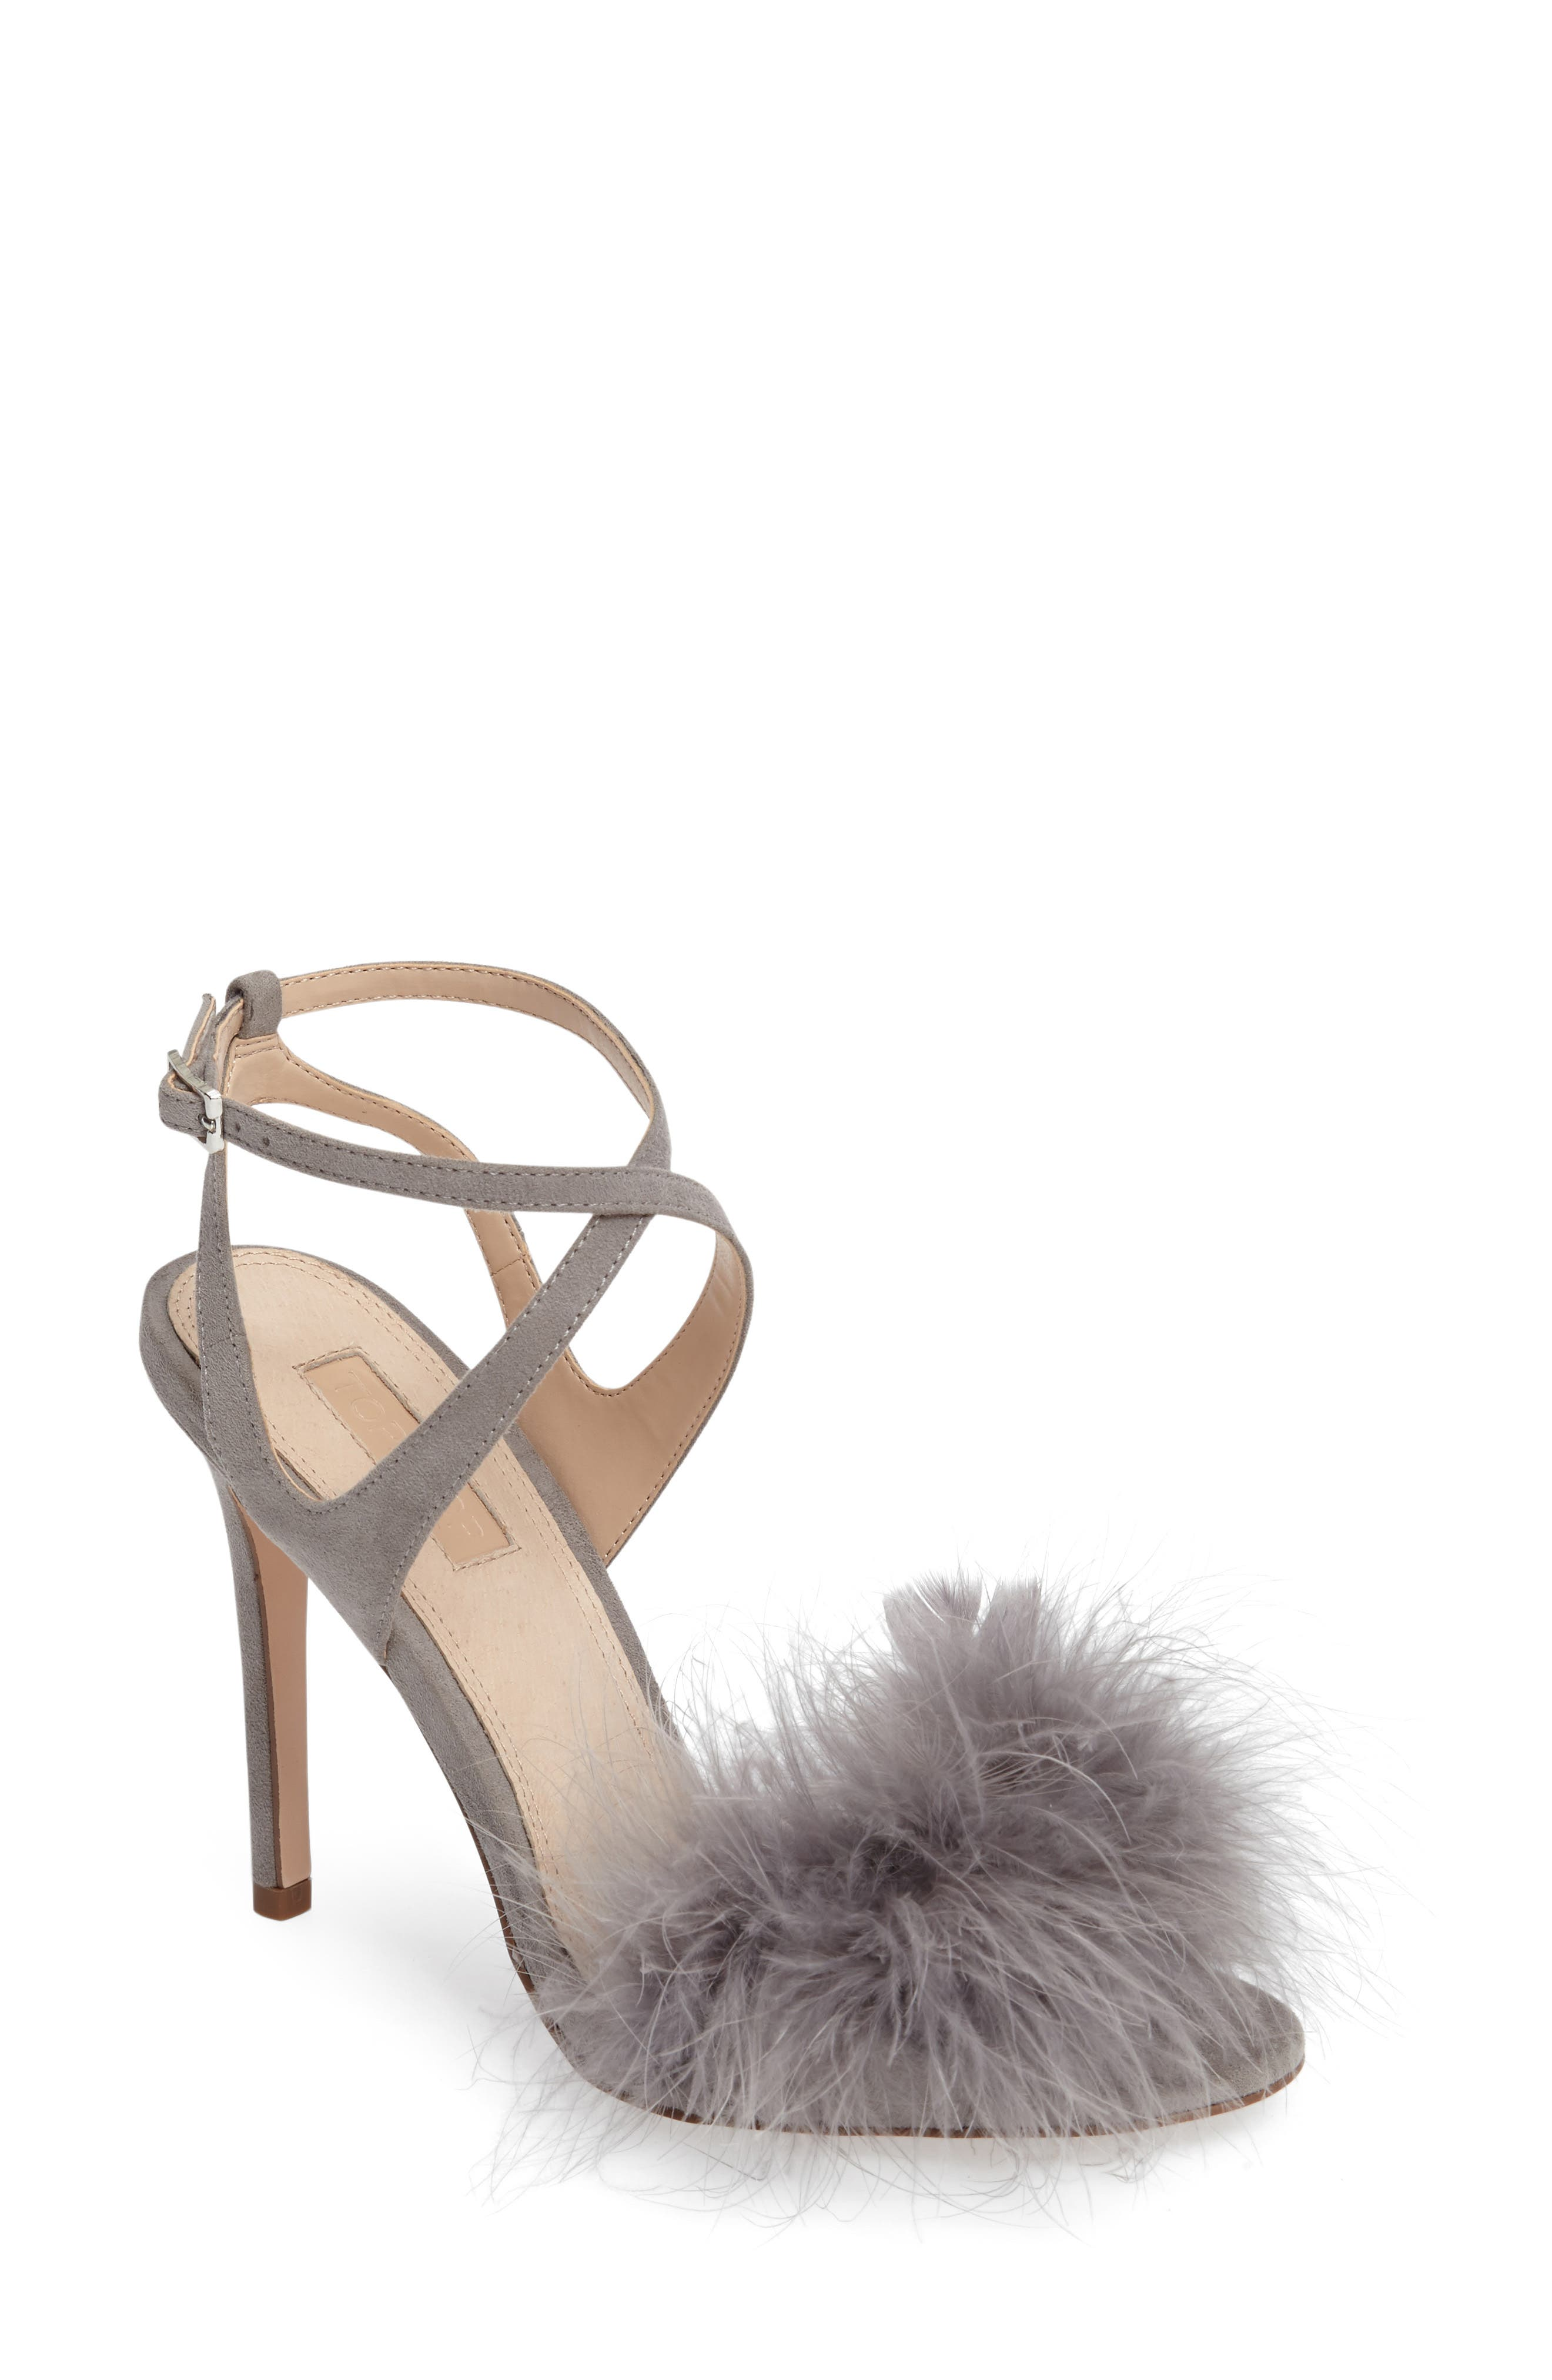 Reine Feathered Sandal,                         Main,                         color, 020